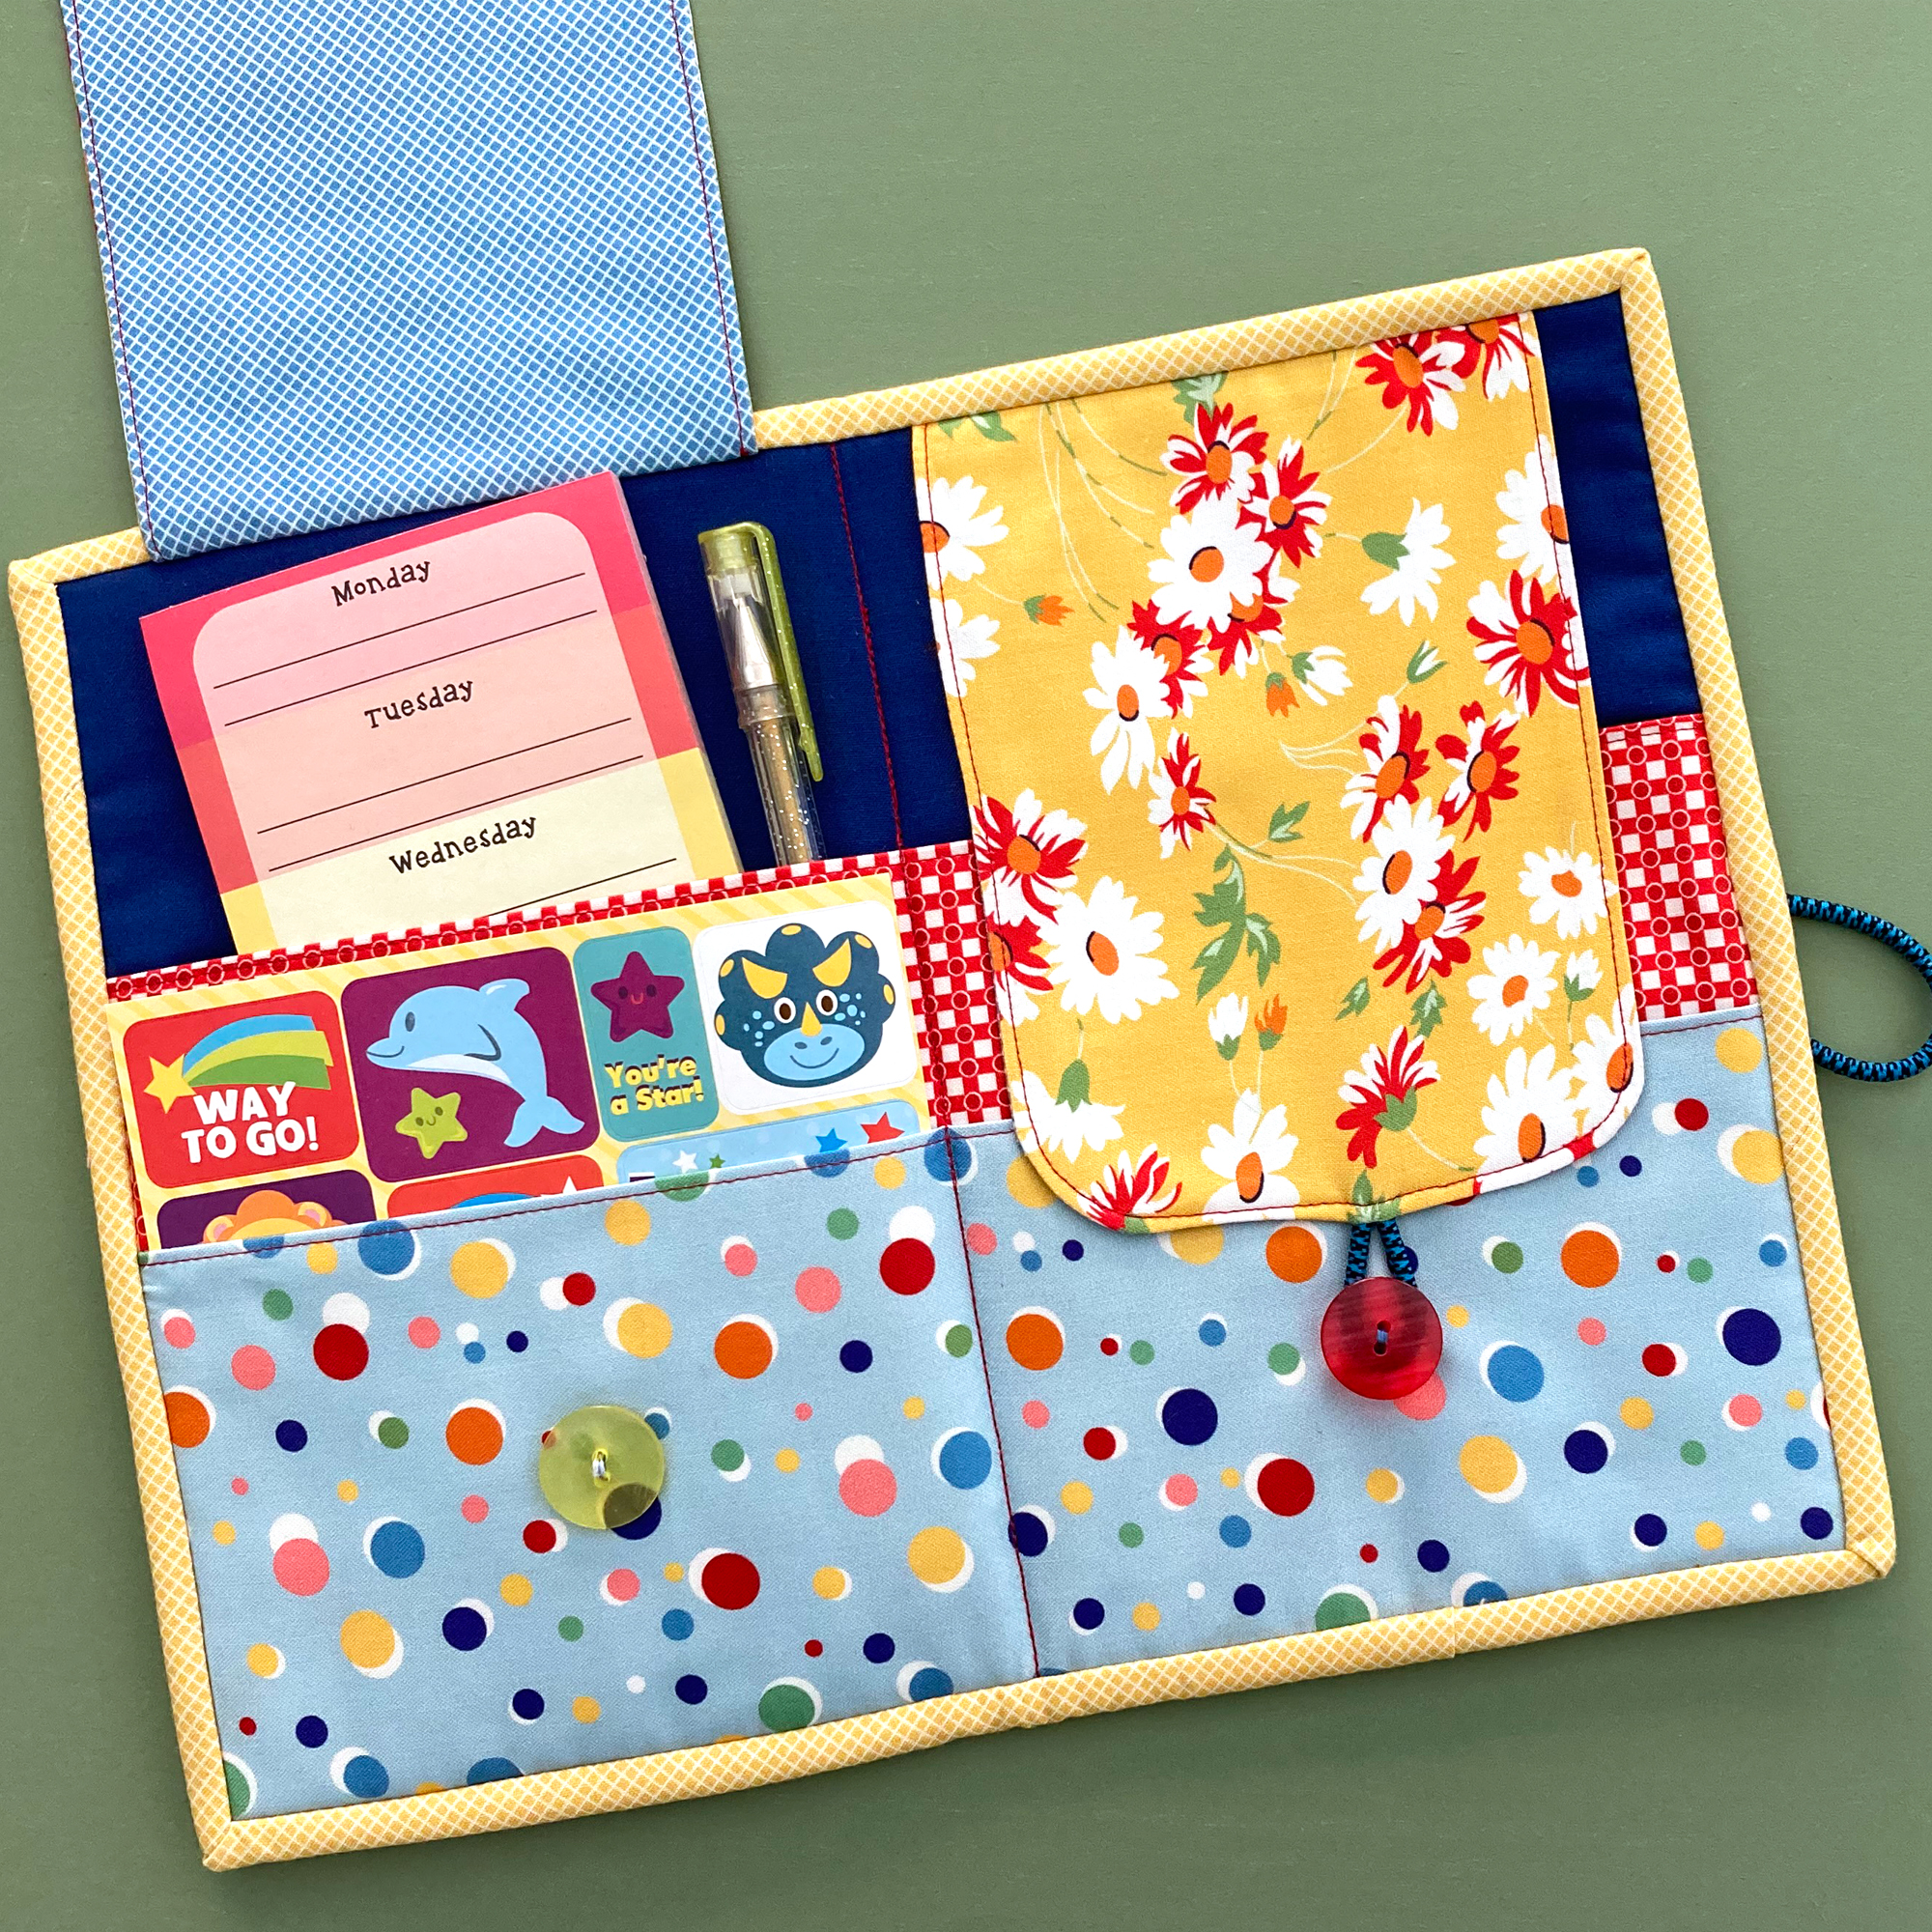 Open fabric organizer with stickers, notepad and pen.